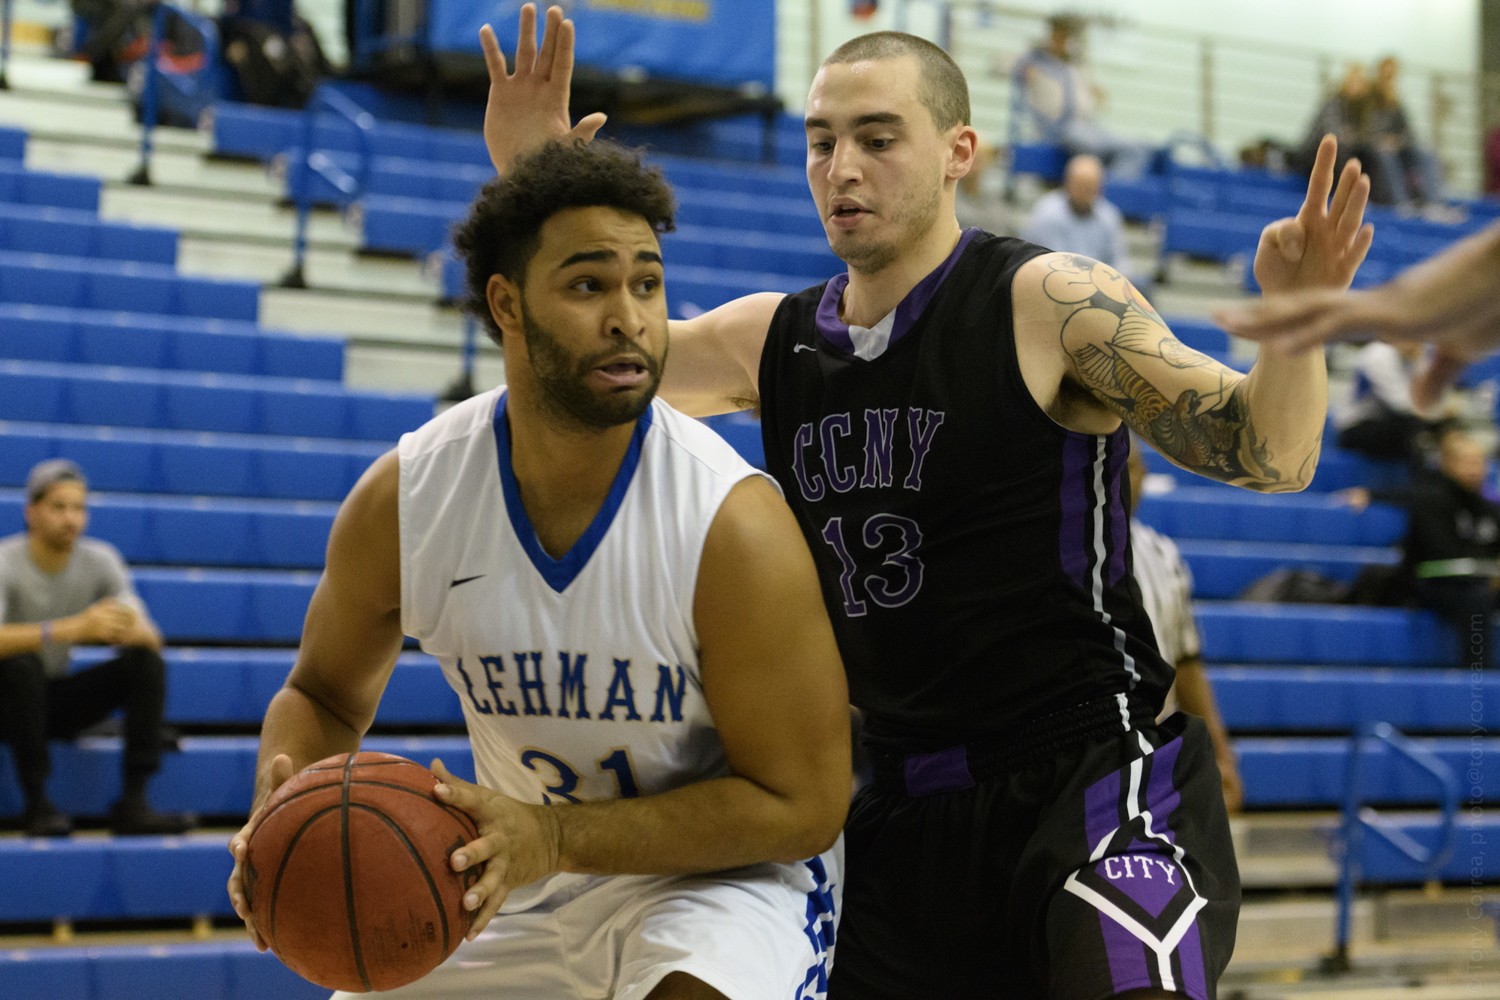 Lehman senior guard Andrew Utate (31) will look to lead the Lightning to its first CUNYAC title in over a decade.